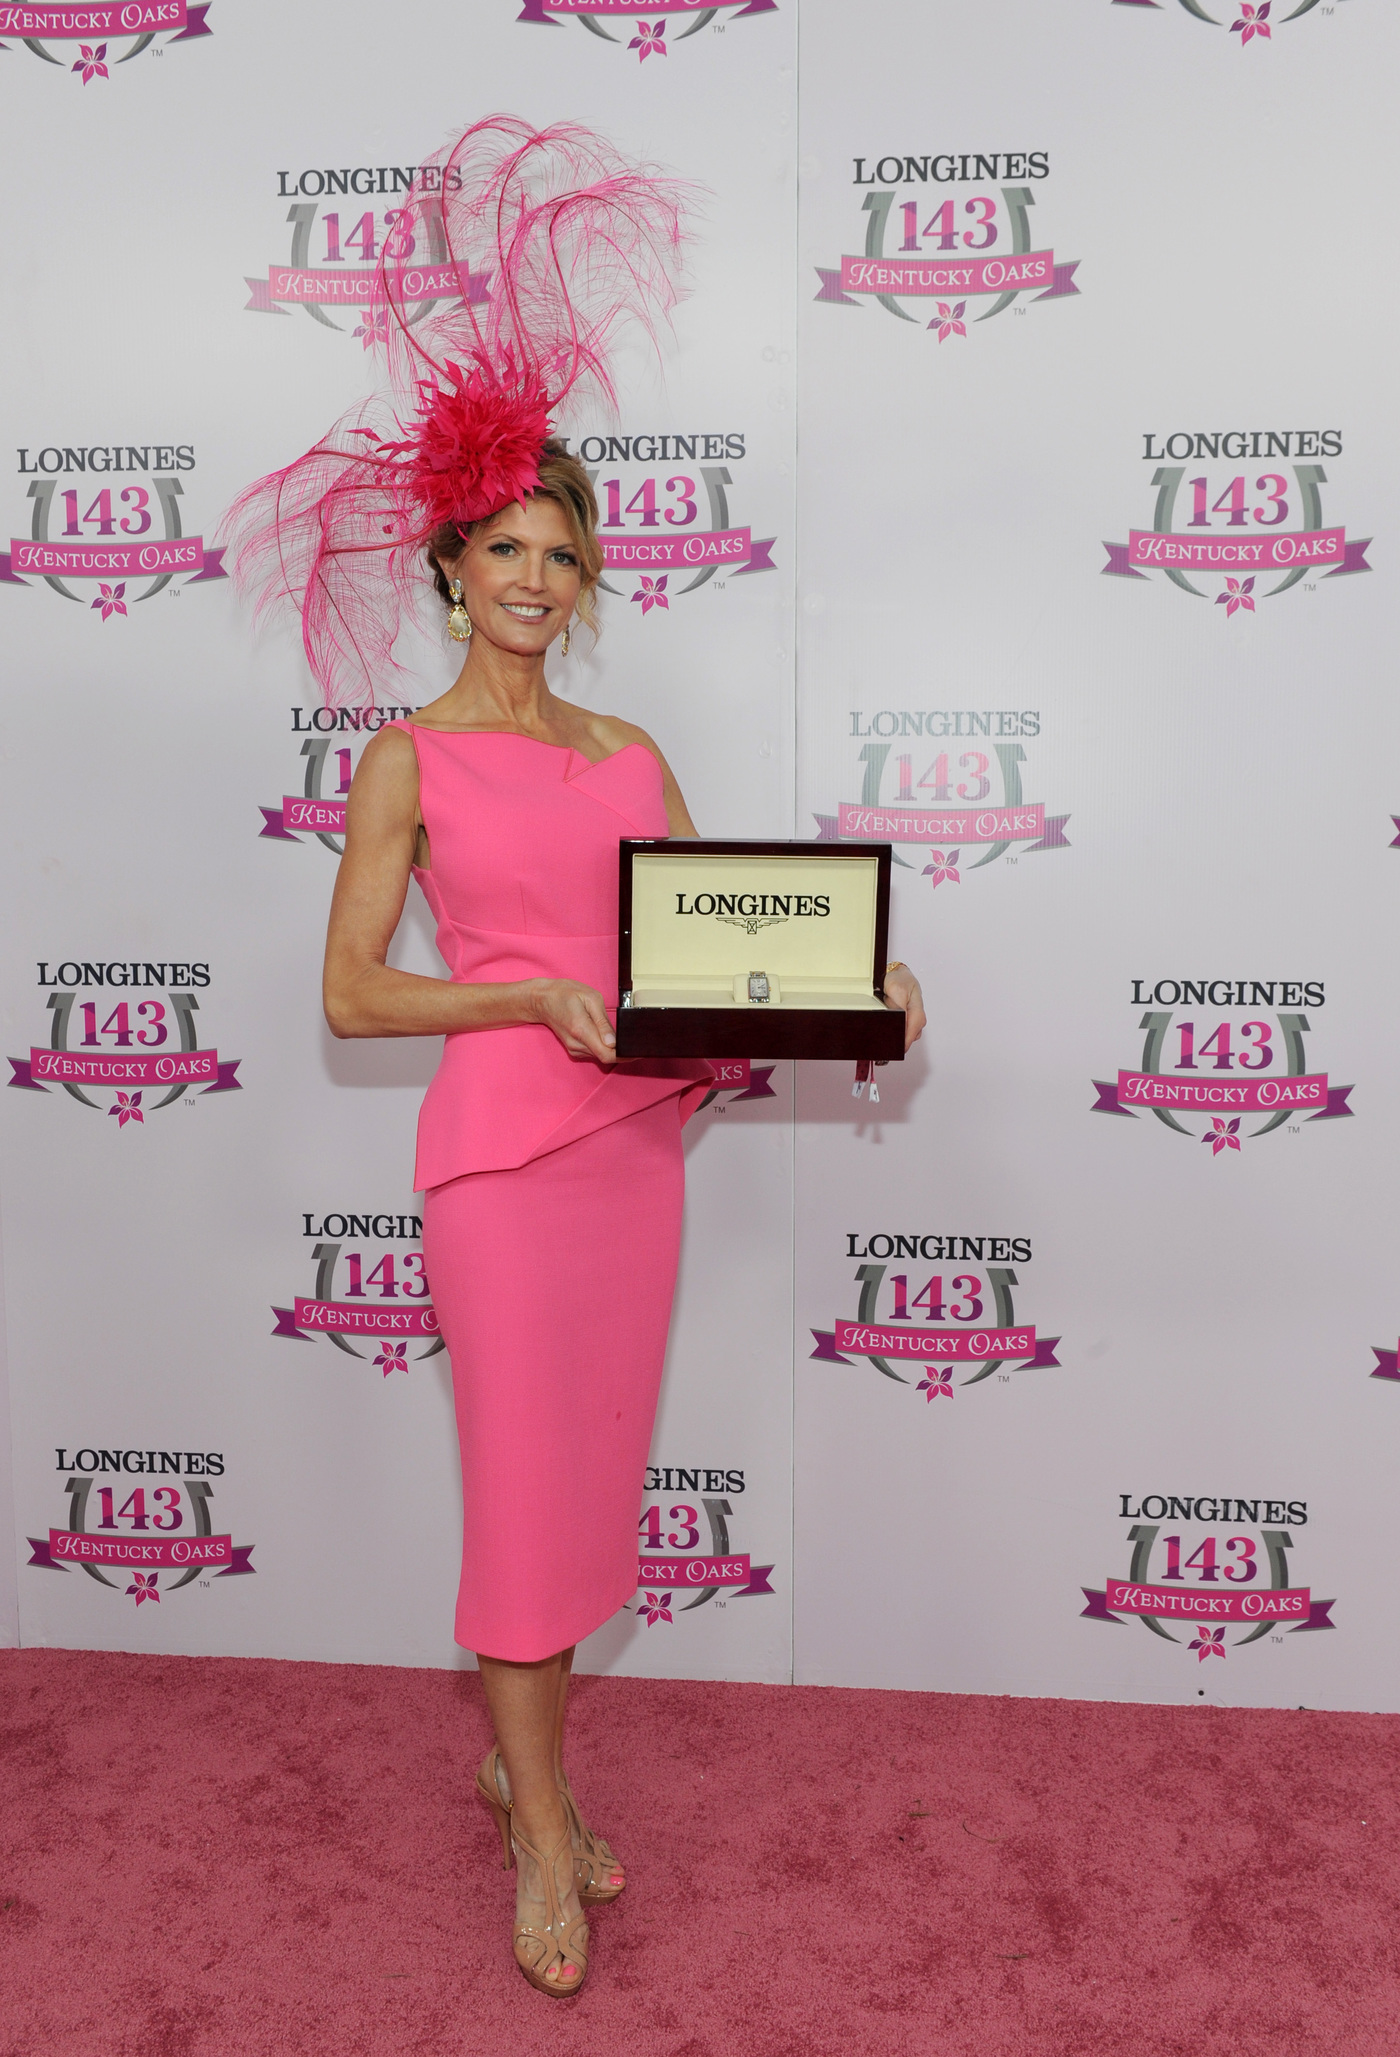 Longines Flat Racing Event: Elegance celebrated in grand style at the 143rd Longines Kentucky Oaks 8